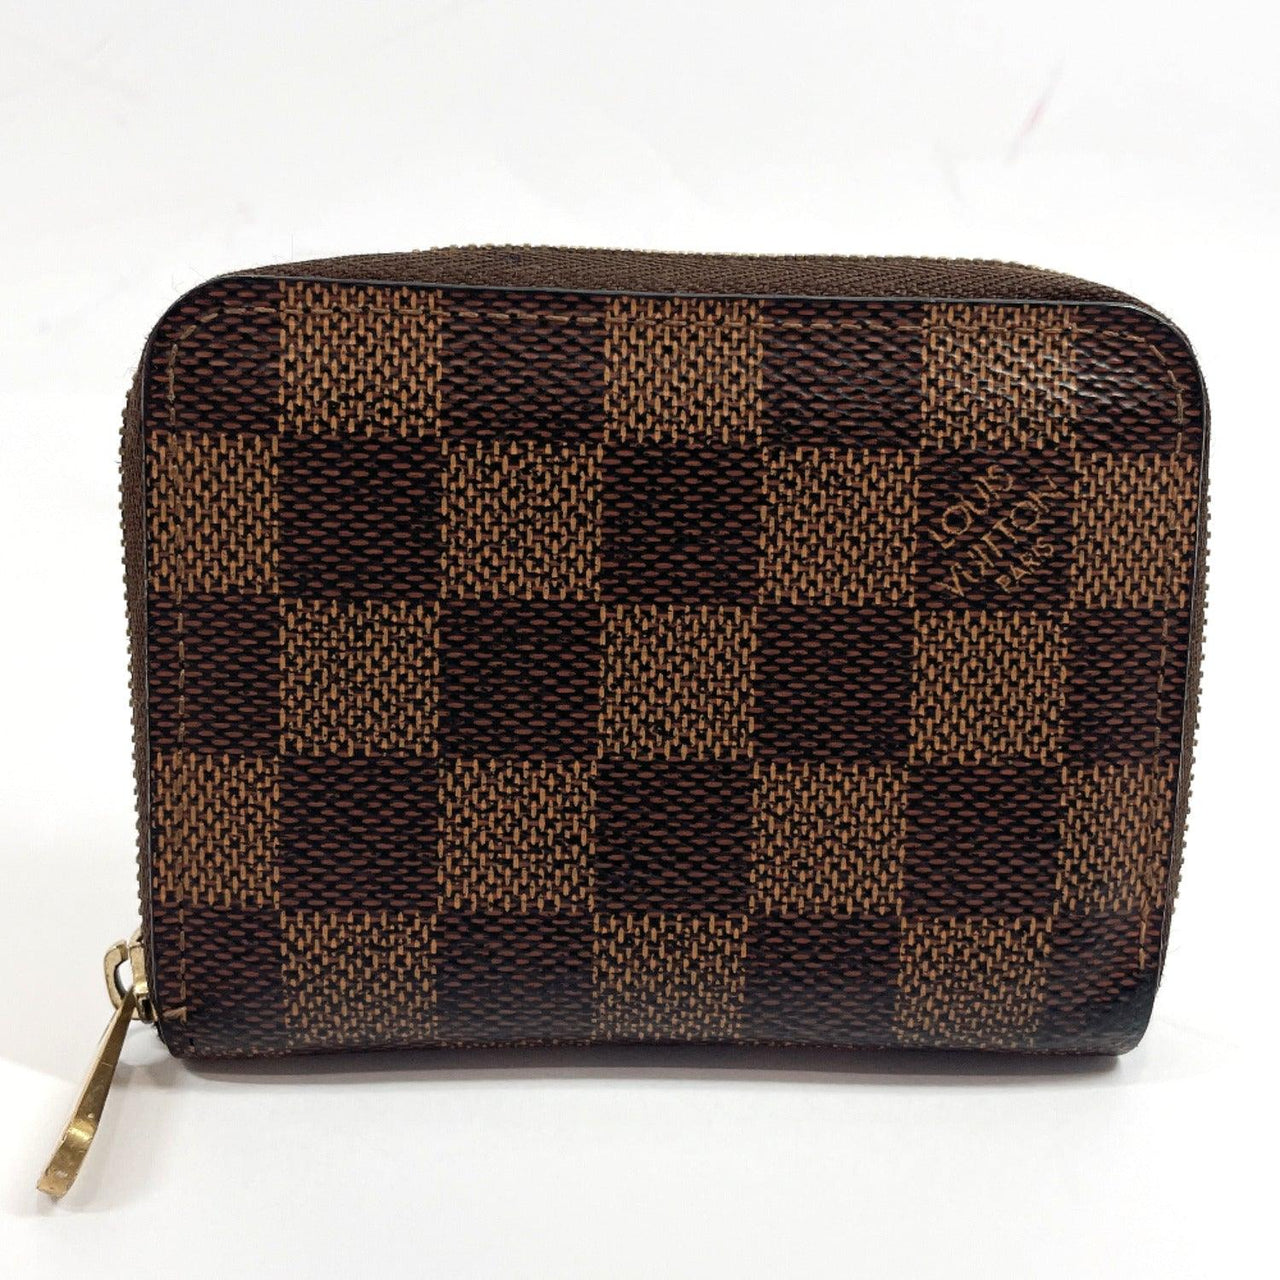 LOUIS VUITTON coin purse N63070 Zippy coin purse Damier canvas Brown unisex Used